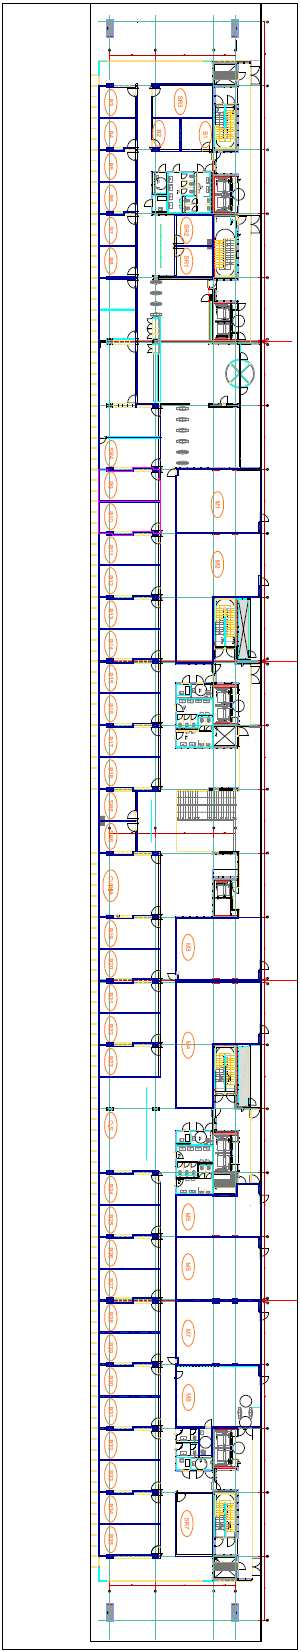 Plans: Business Center y Lcales Cmerciales Oficina Nº Superficie Alquilable (m2) M1 124.62 M2 181.92 M3 124.